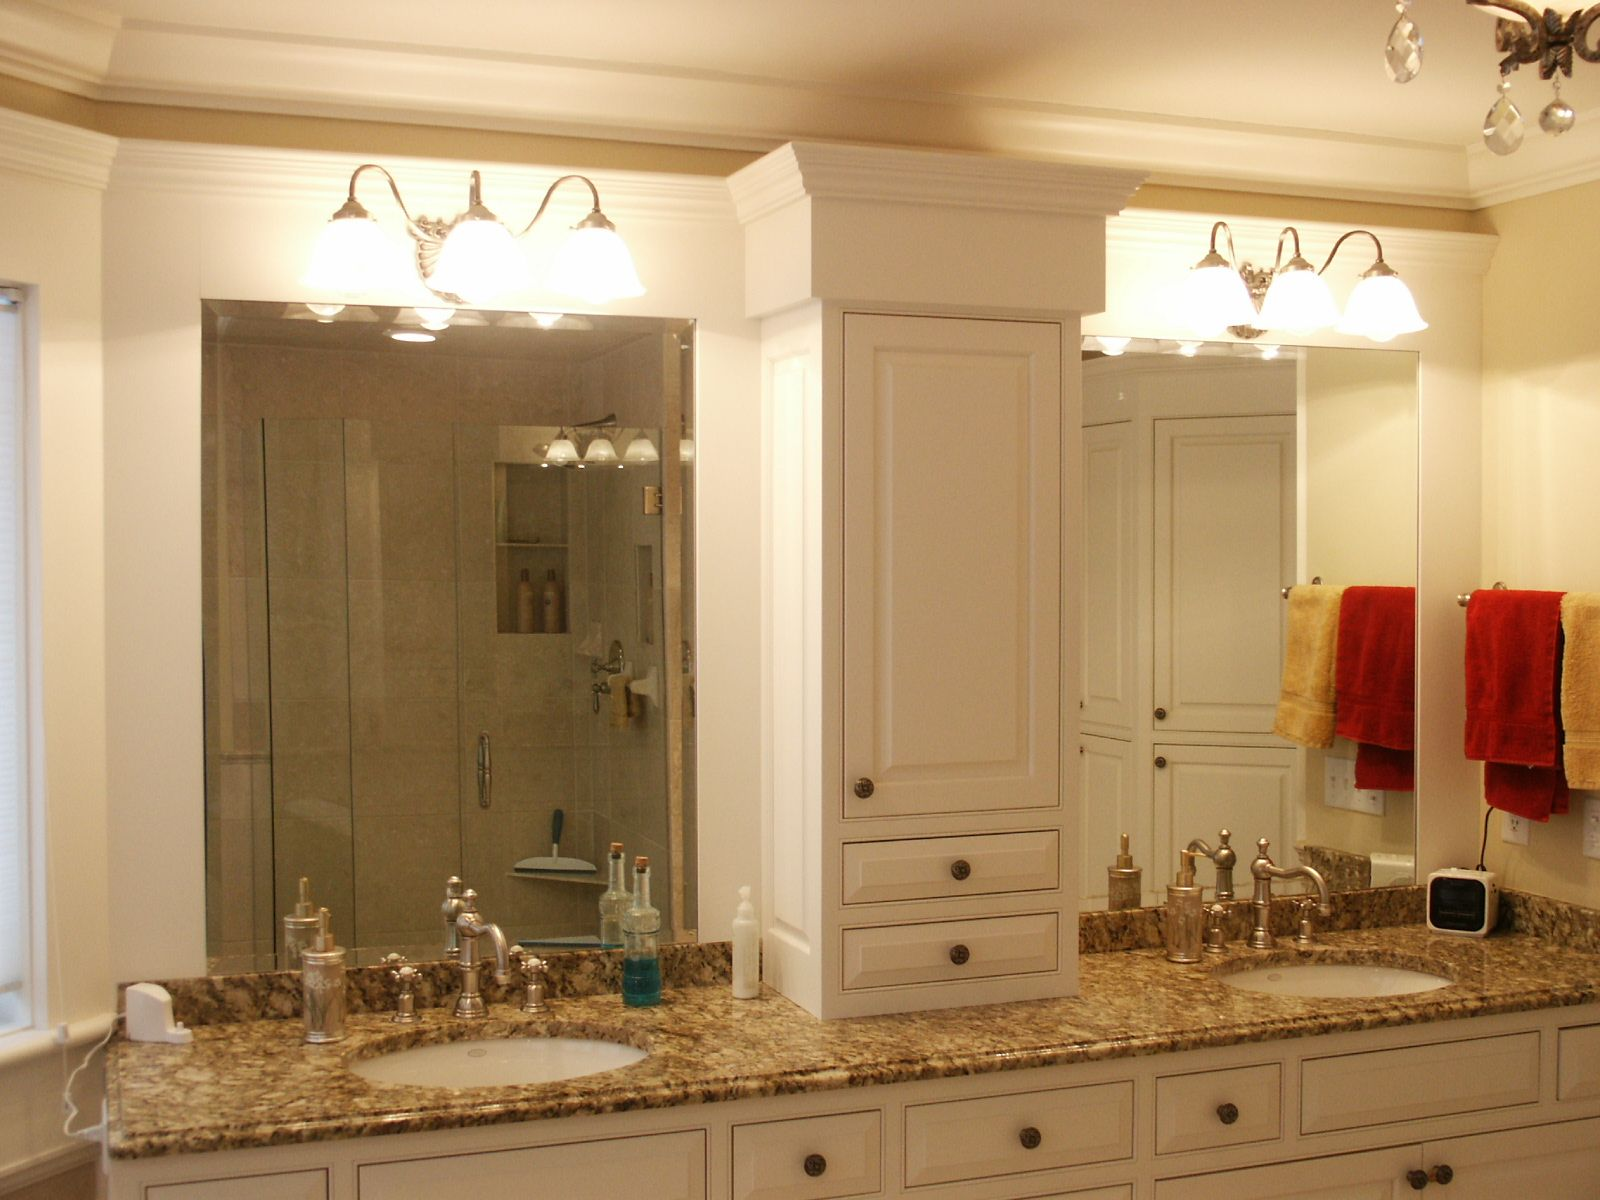 Master Bathroom Cabinet Ideas With luxury bathroom with double vanity  mirrors ideas with granite countertop and white washbasin with sink and big  glorious ...